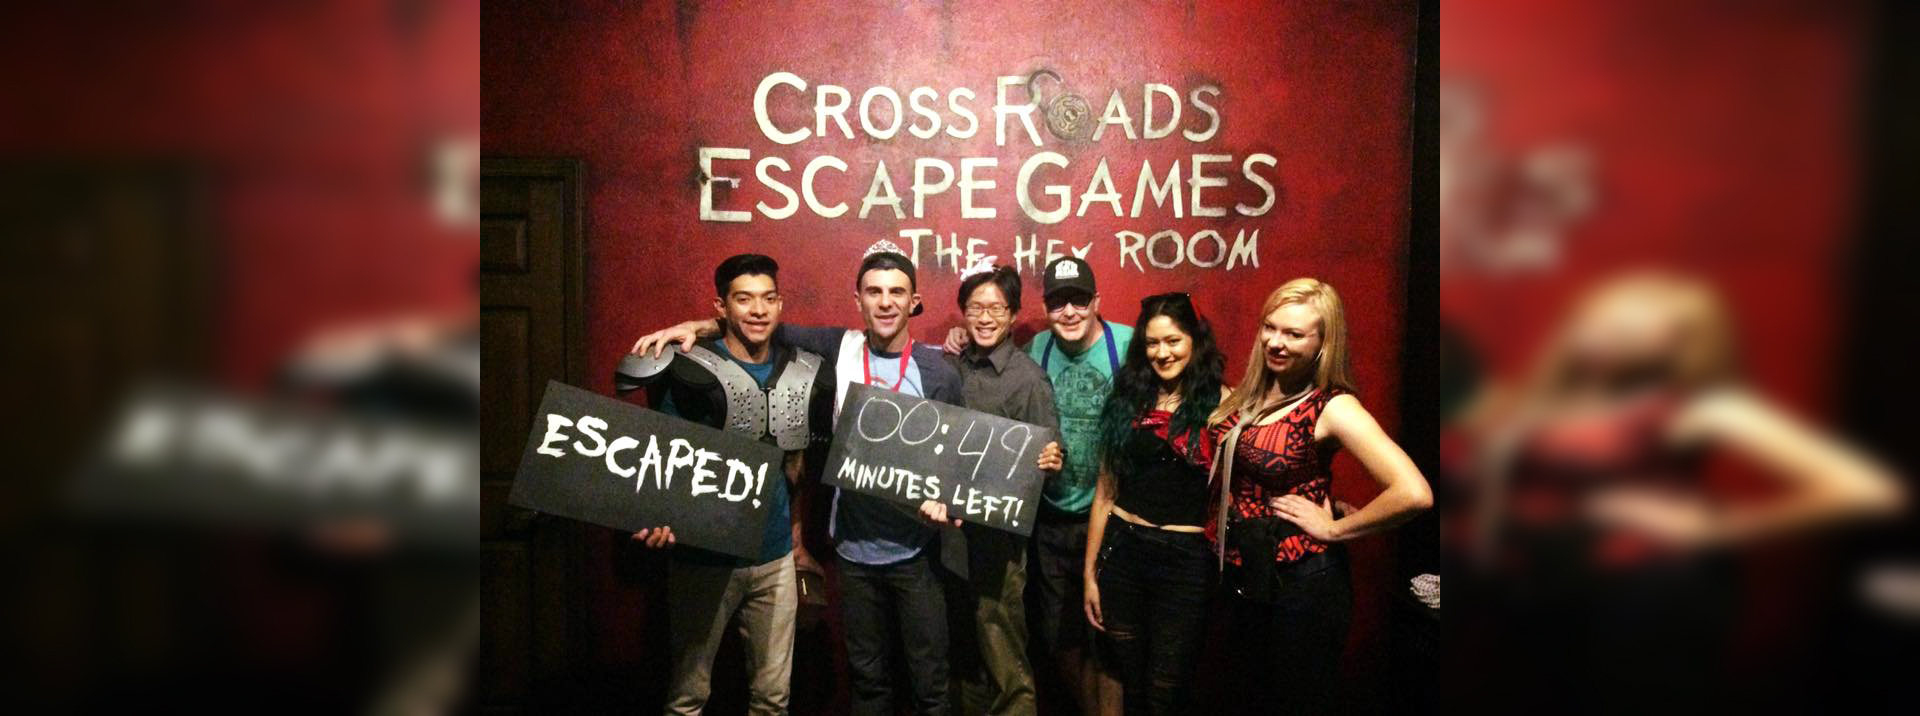 We all escaped.  Barely!